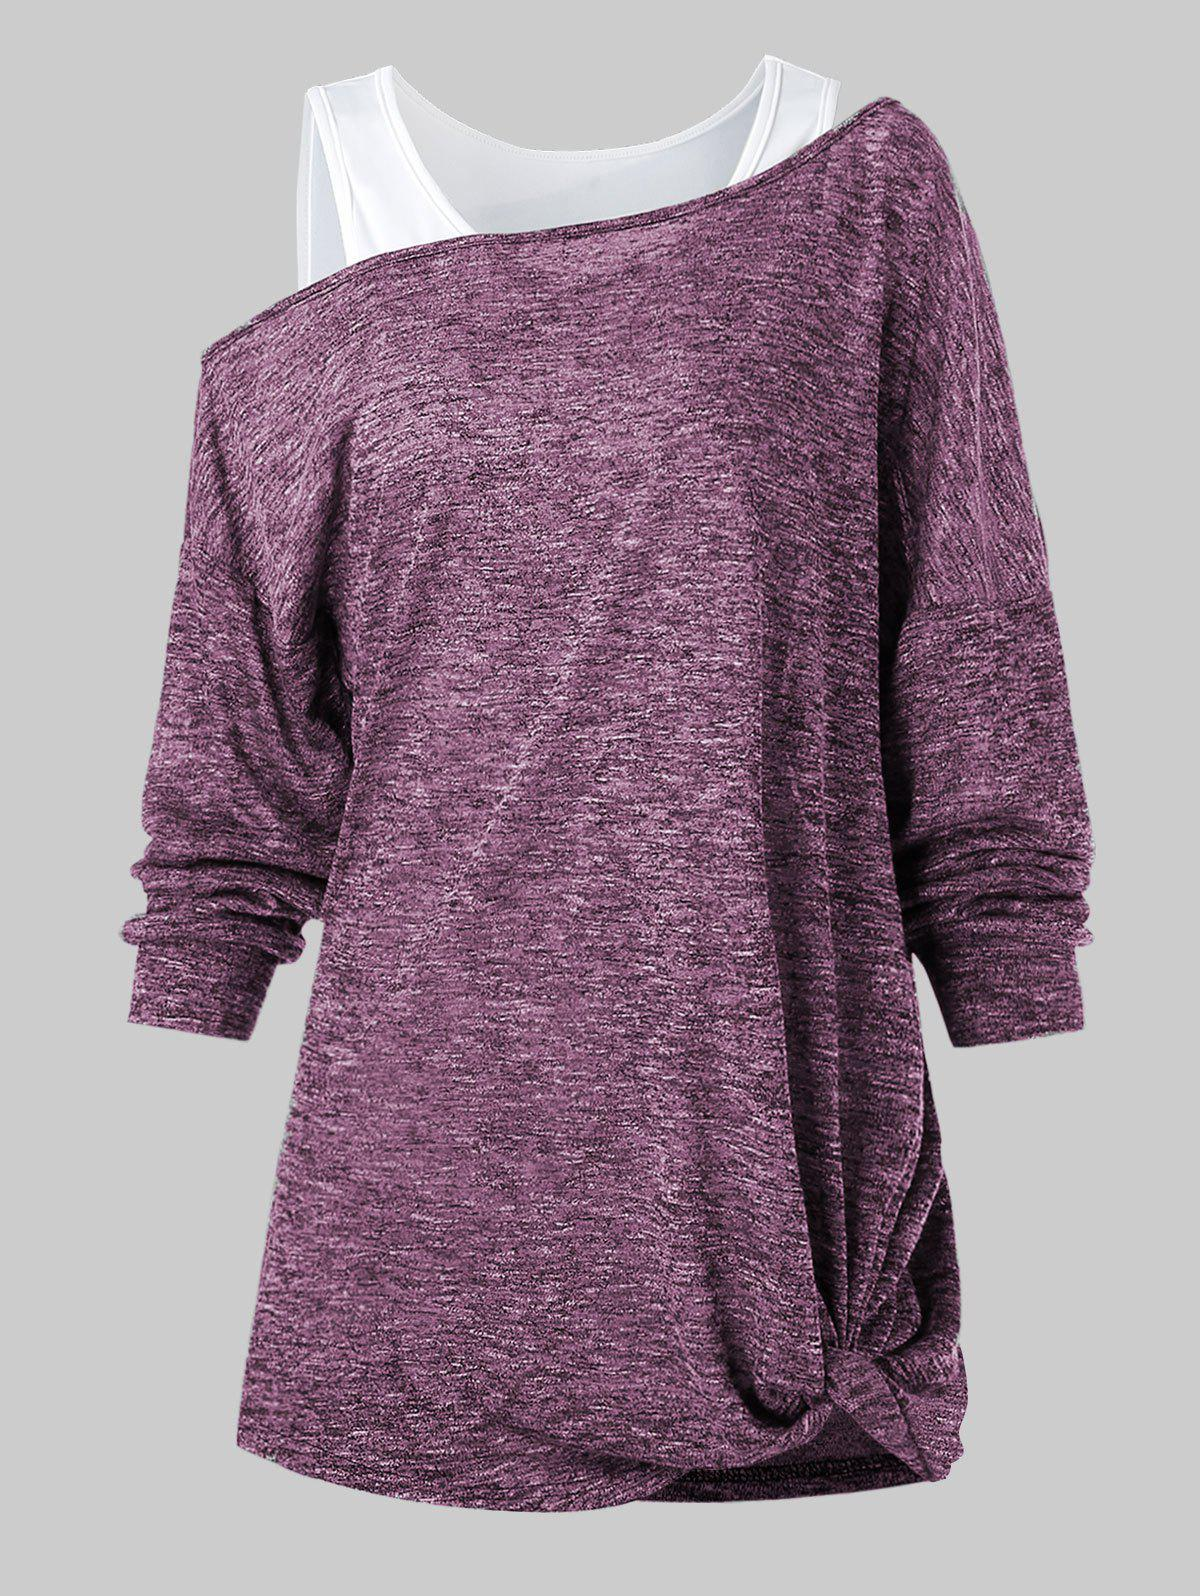 Space Dye Twist T Shirt with Solid Tank Top - MAROON 3XL